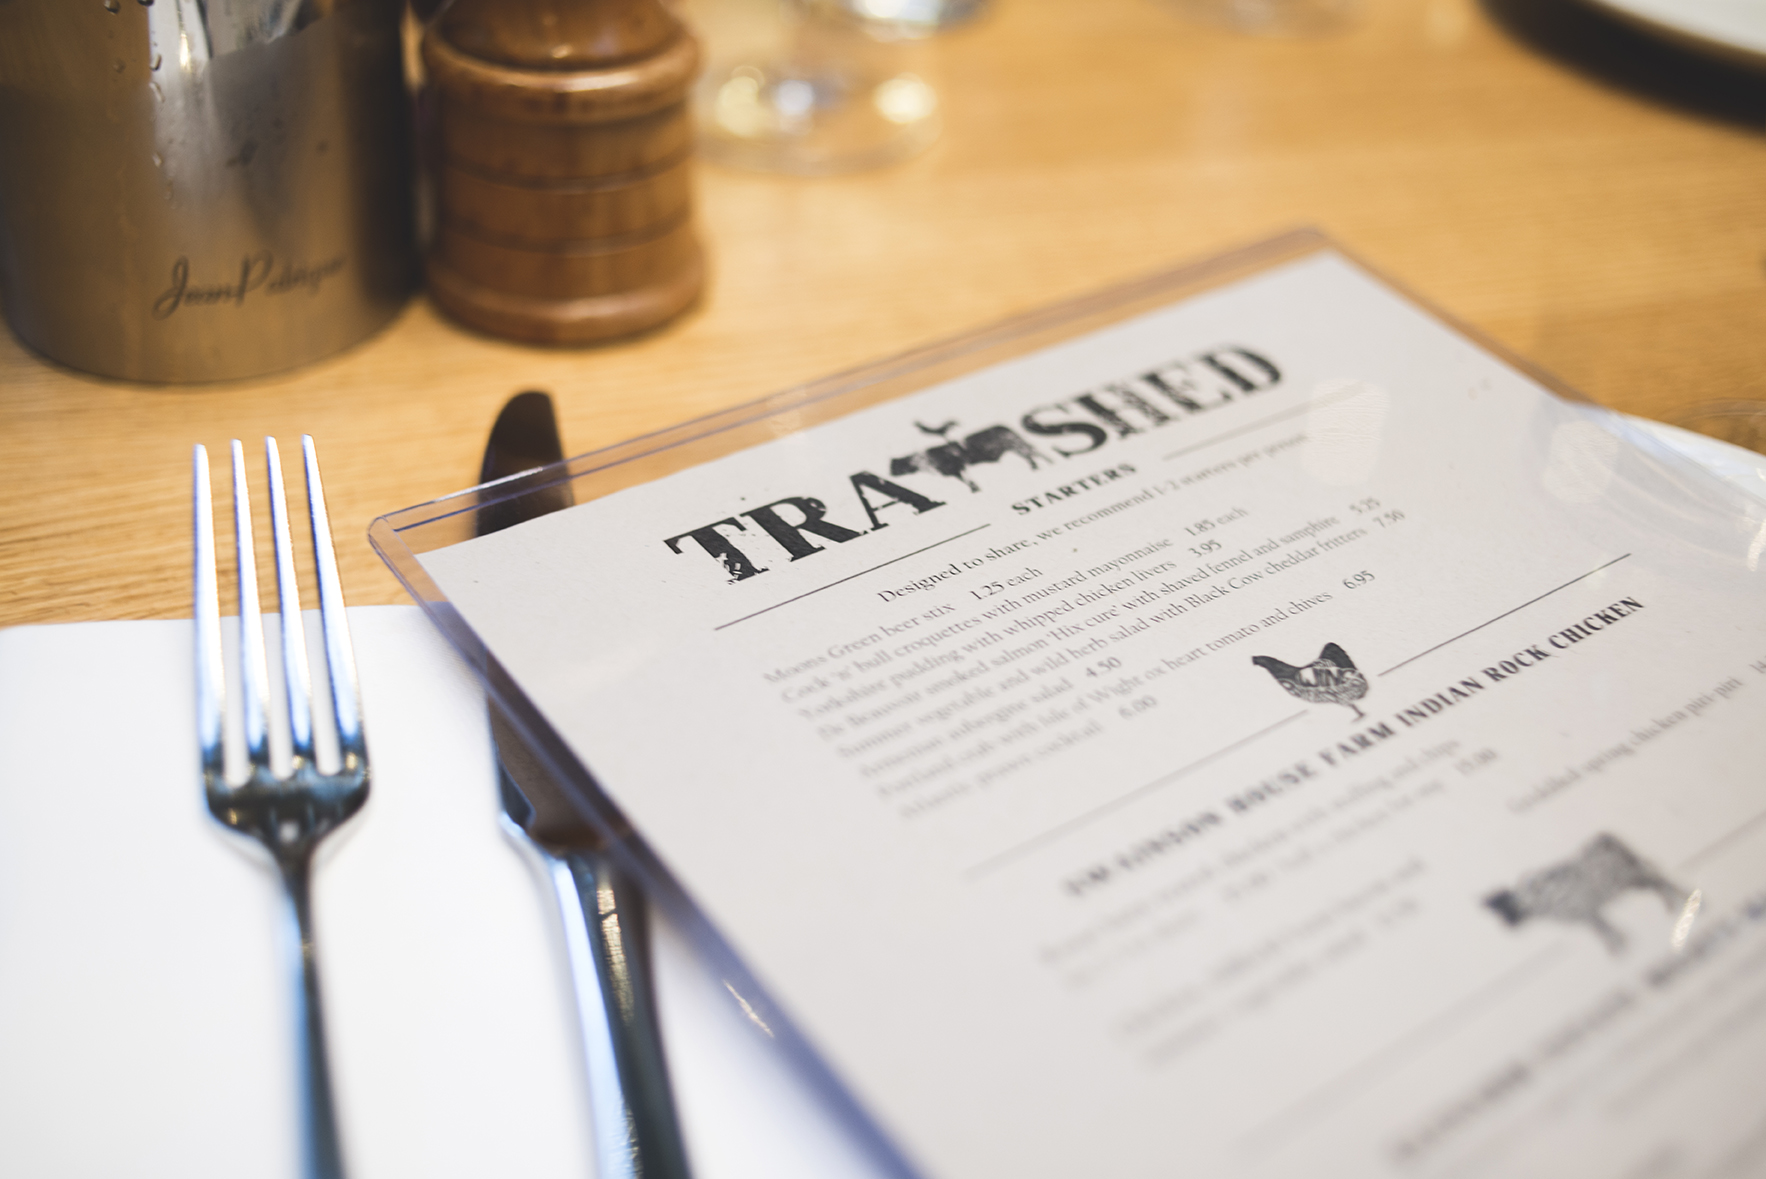 Let us know what you had to eat at The Tramshed in the comments below this blog post!